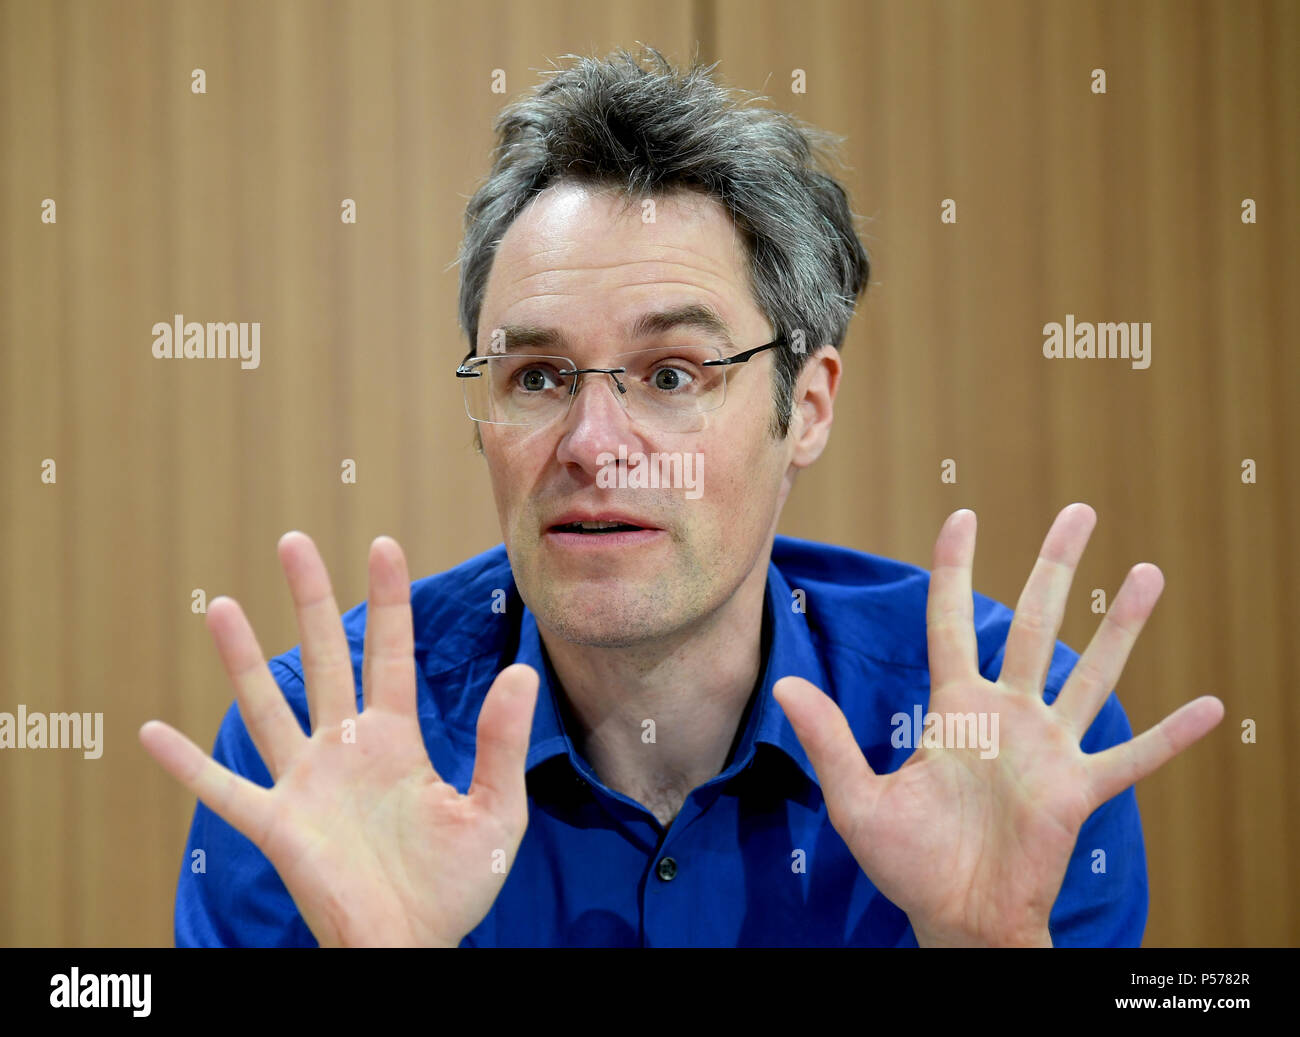 Berlin, Germany. 19th June, 2018. Christoph Bautz, CEO of Campact, delivers a statement during the press conference about the 'Stop-Kohle' (lit. stop coal) demonstration on 24 June 2018, which is also expected to take place in Berlin. Credit: Britta Pedersen/dpa-Zentralbild/dpa/Alamy Live News Stock Photo